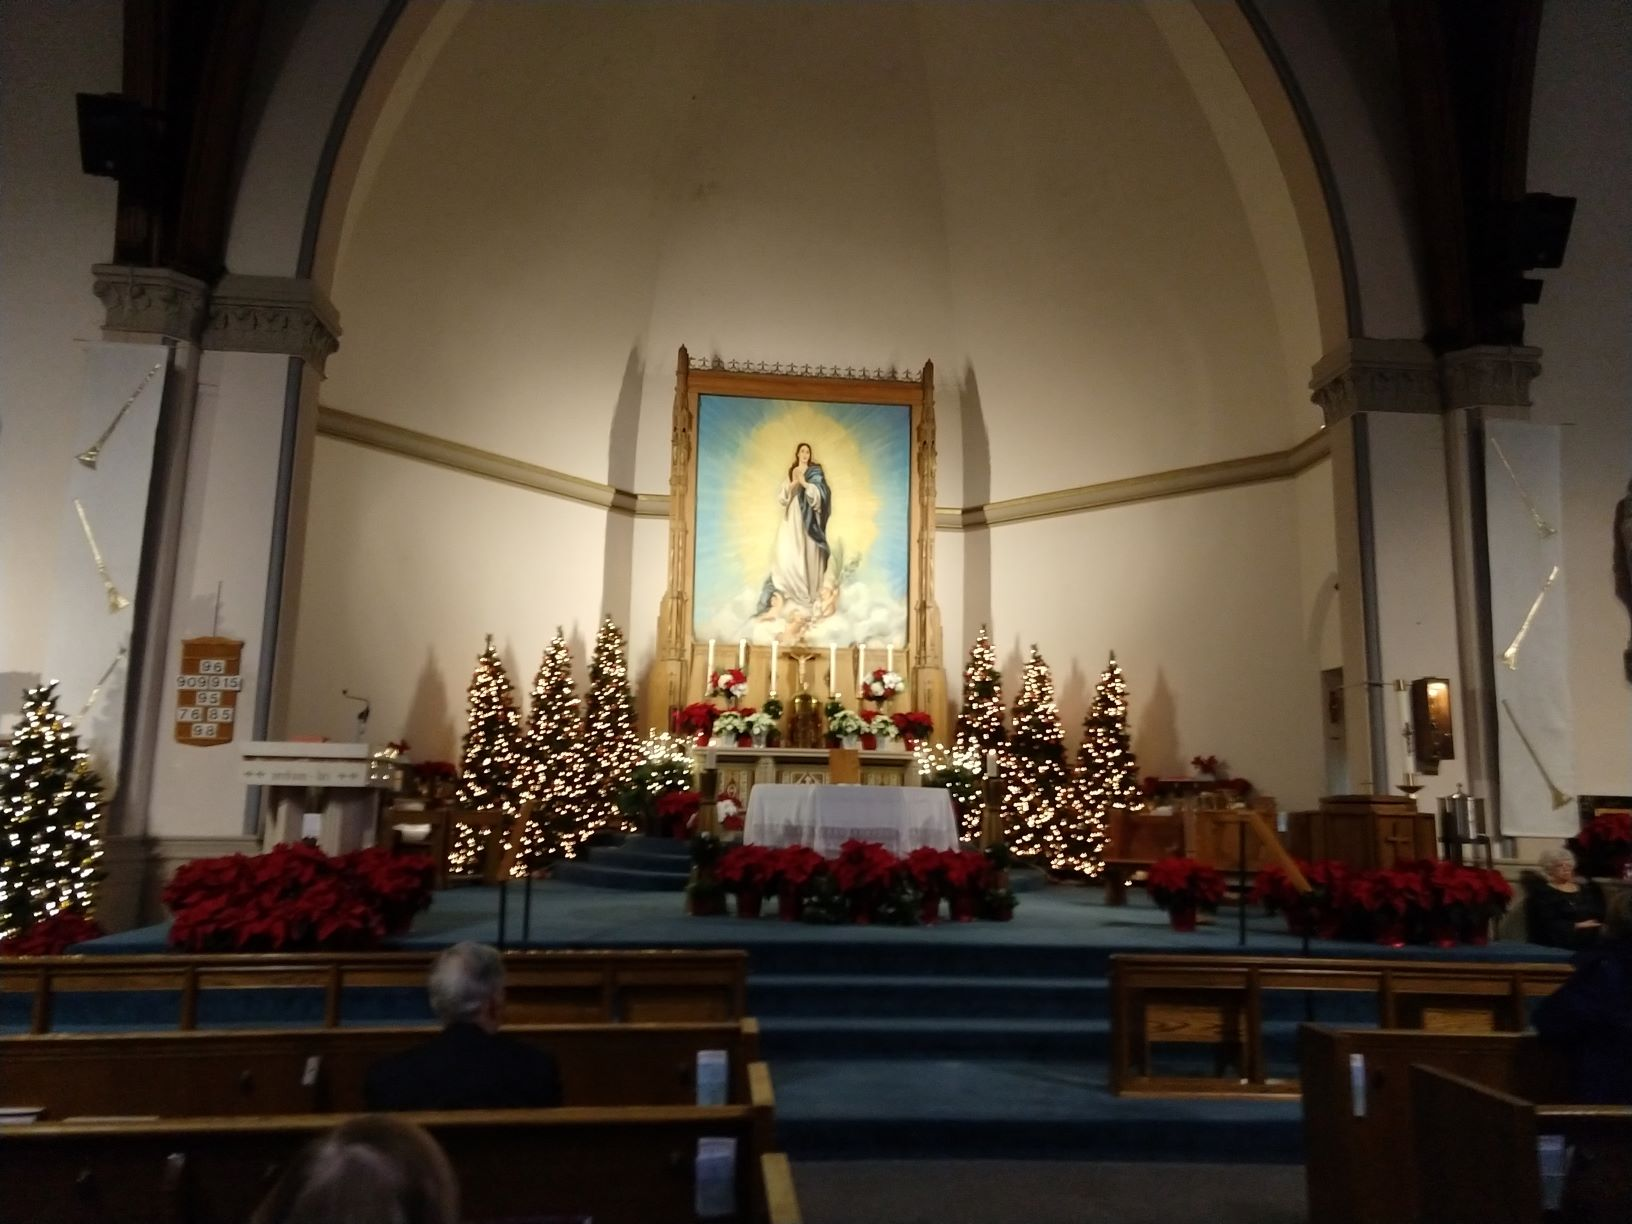 A photo of the altar on Christmas 2019